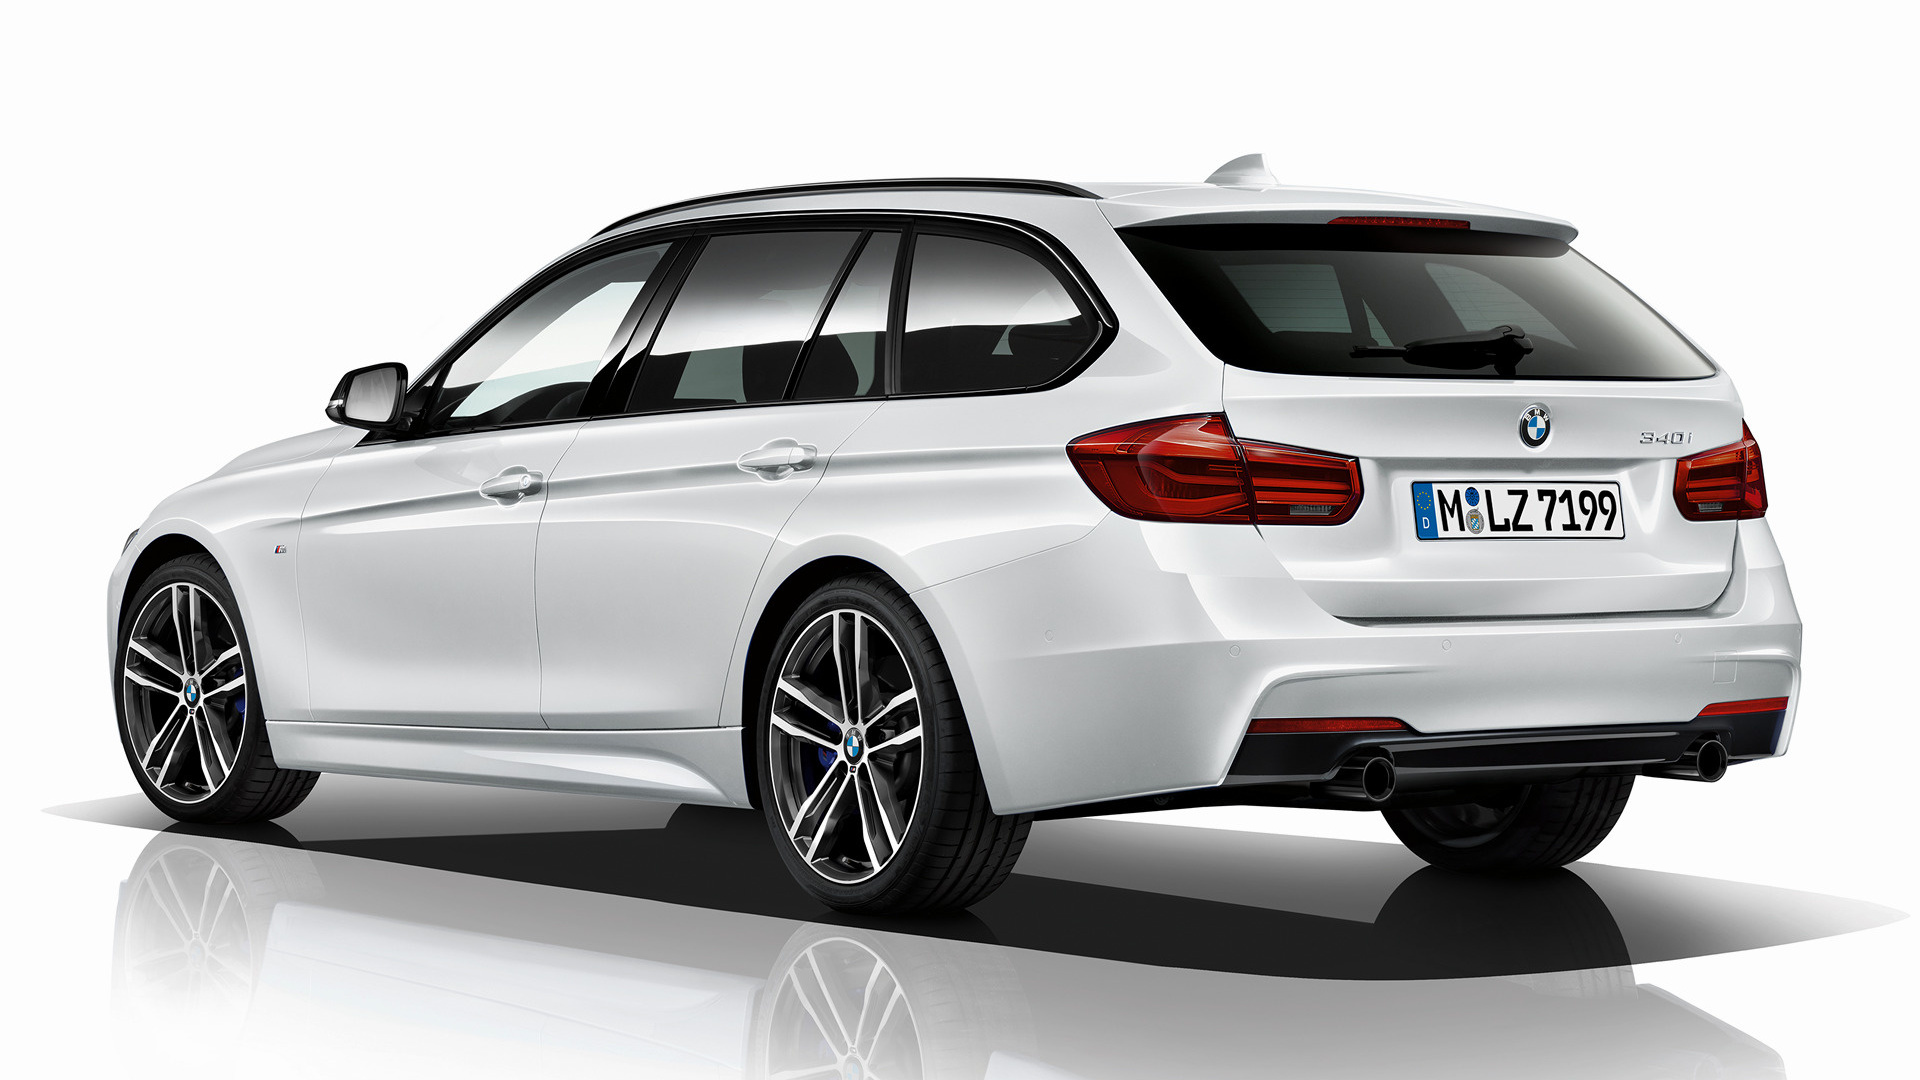 Bmw 325ci M Sport Edition E46 Wallpapers Car Wallpapers Hd: 2017 BMW 3 Series Touring M Sport Shadow Edition